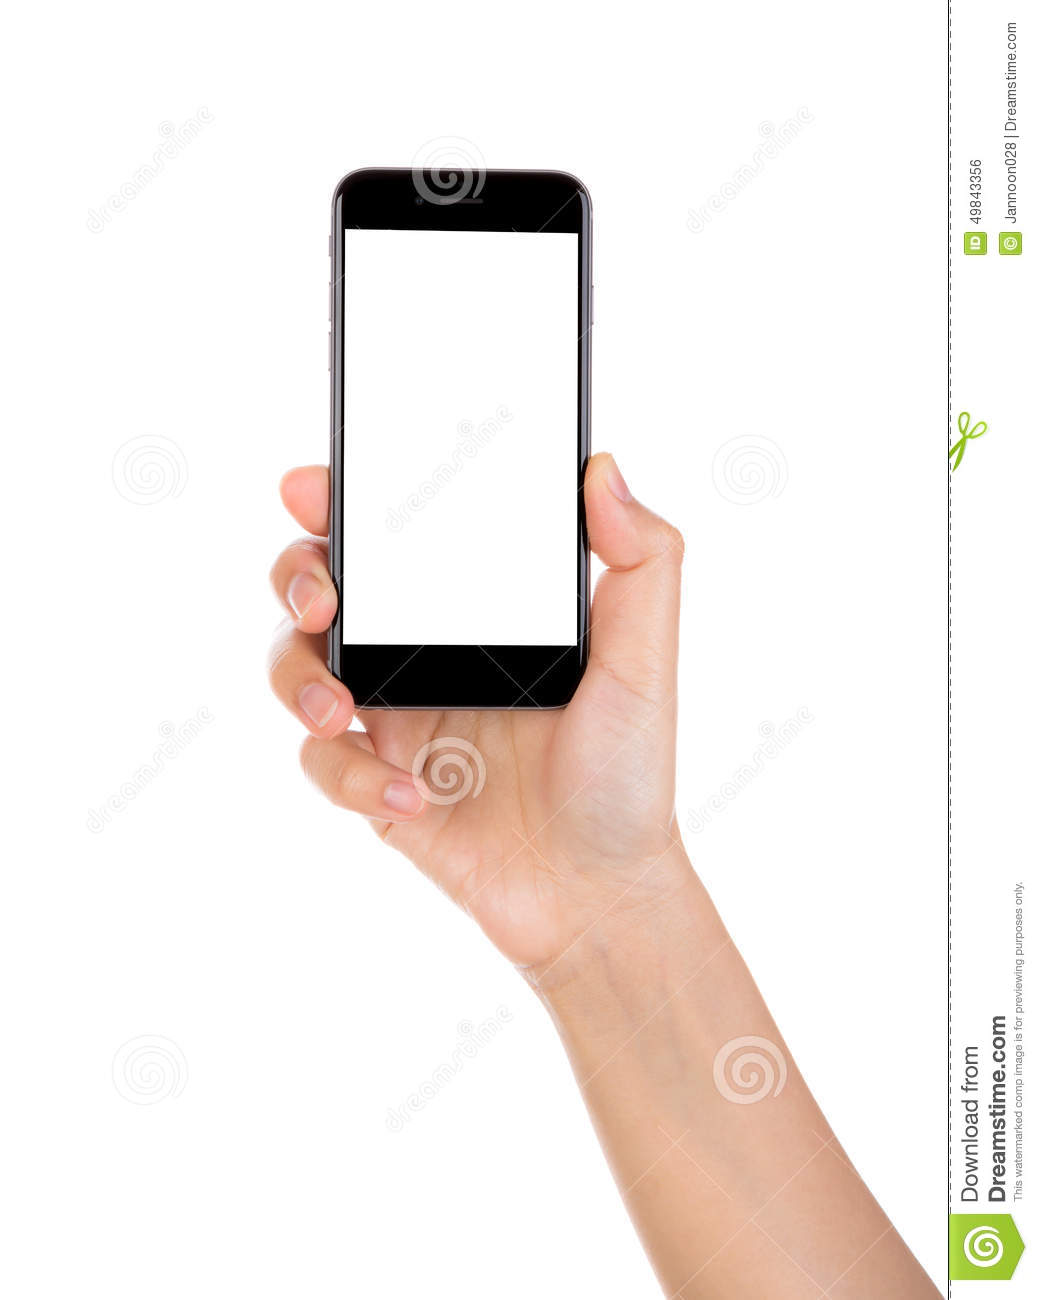 Image Result For All About Mobile Phone Handphone Gadget Mobile